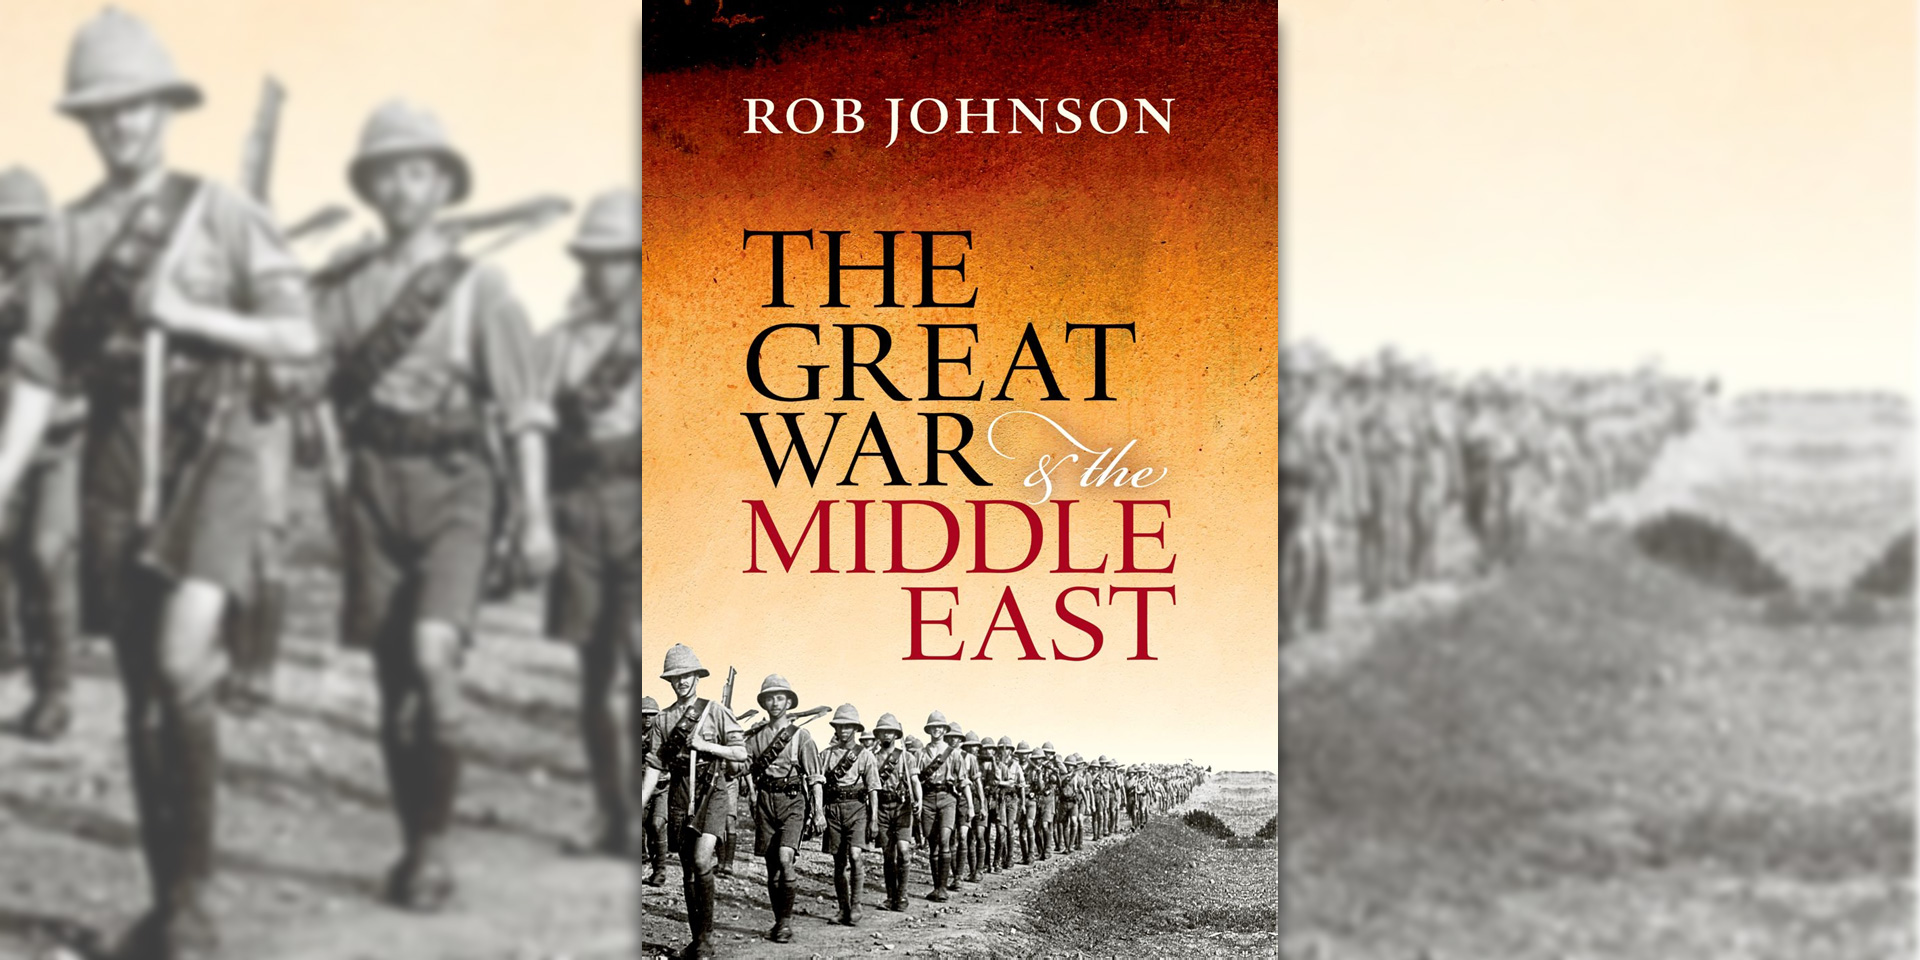 'The Great War and the Middle East' book cover